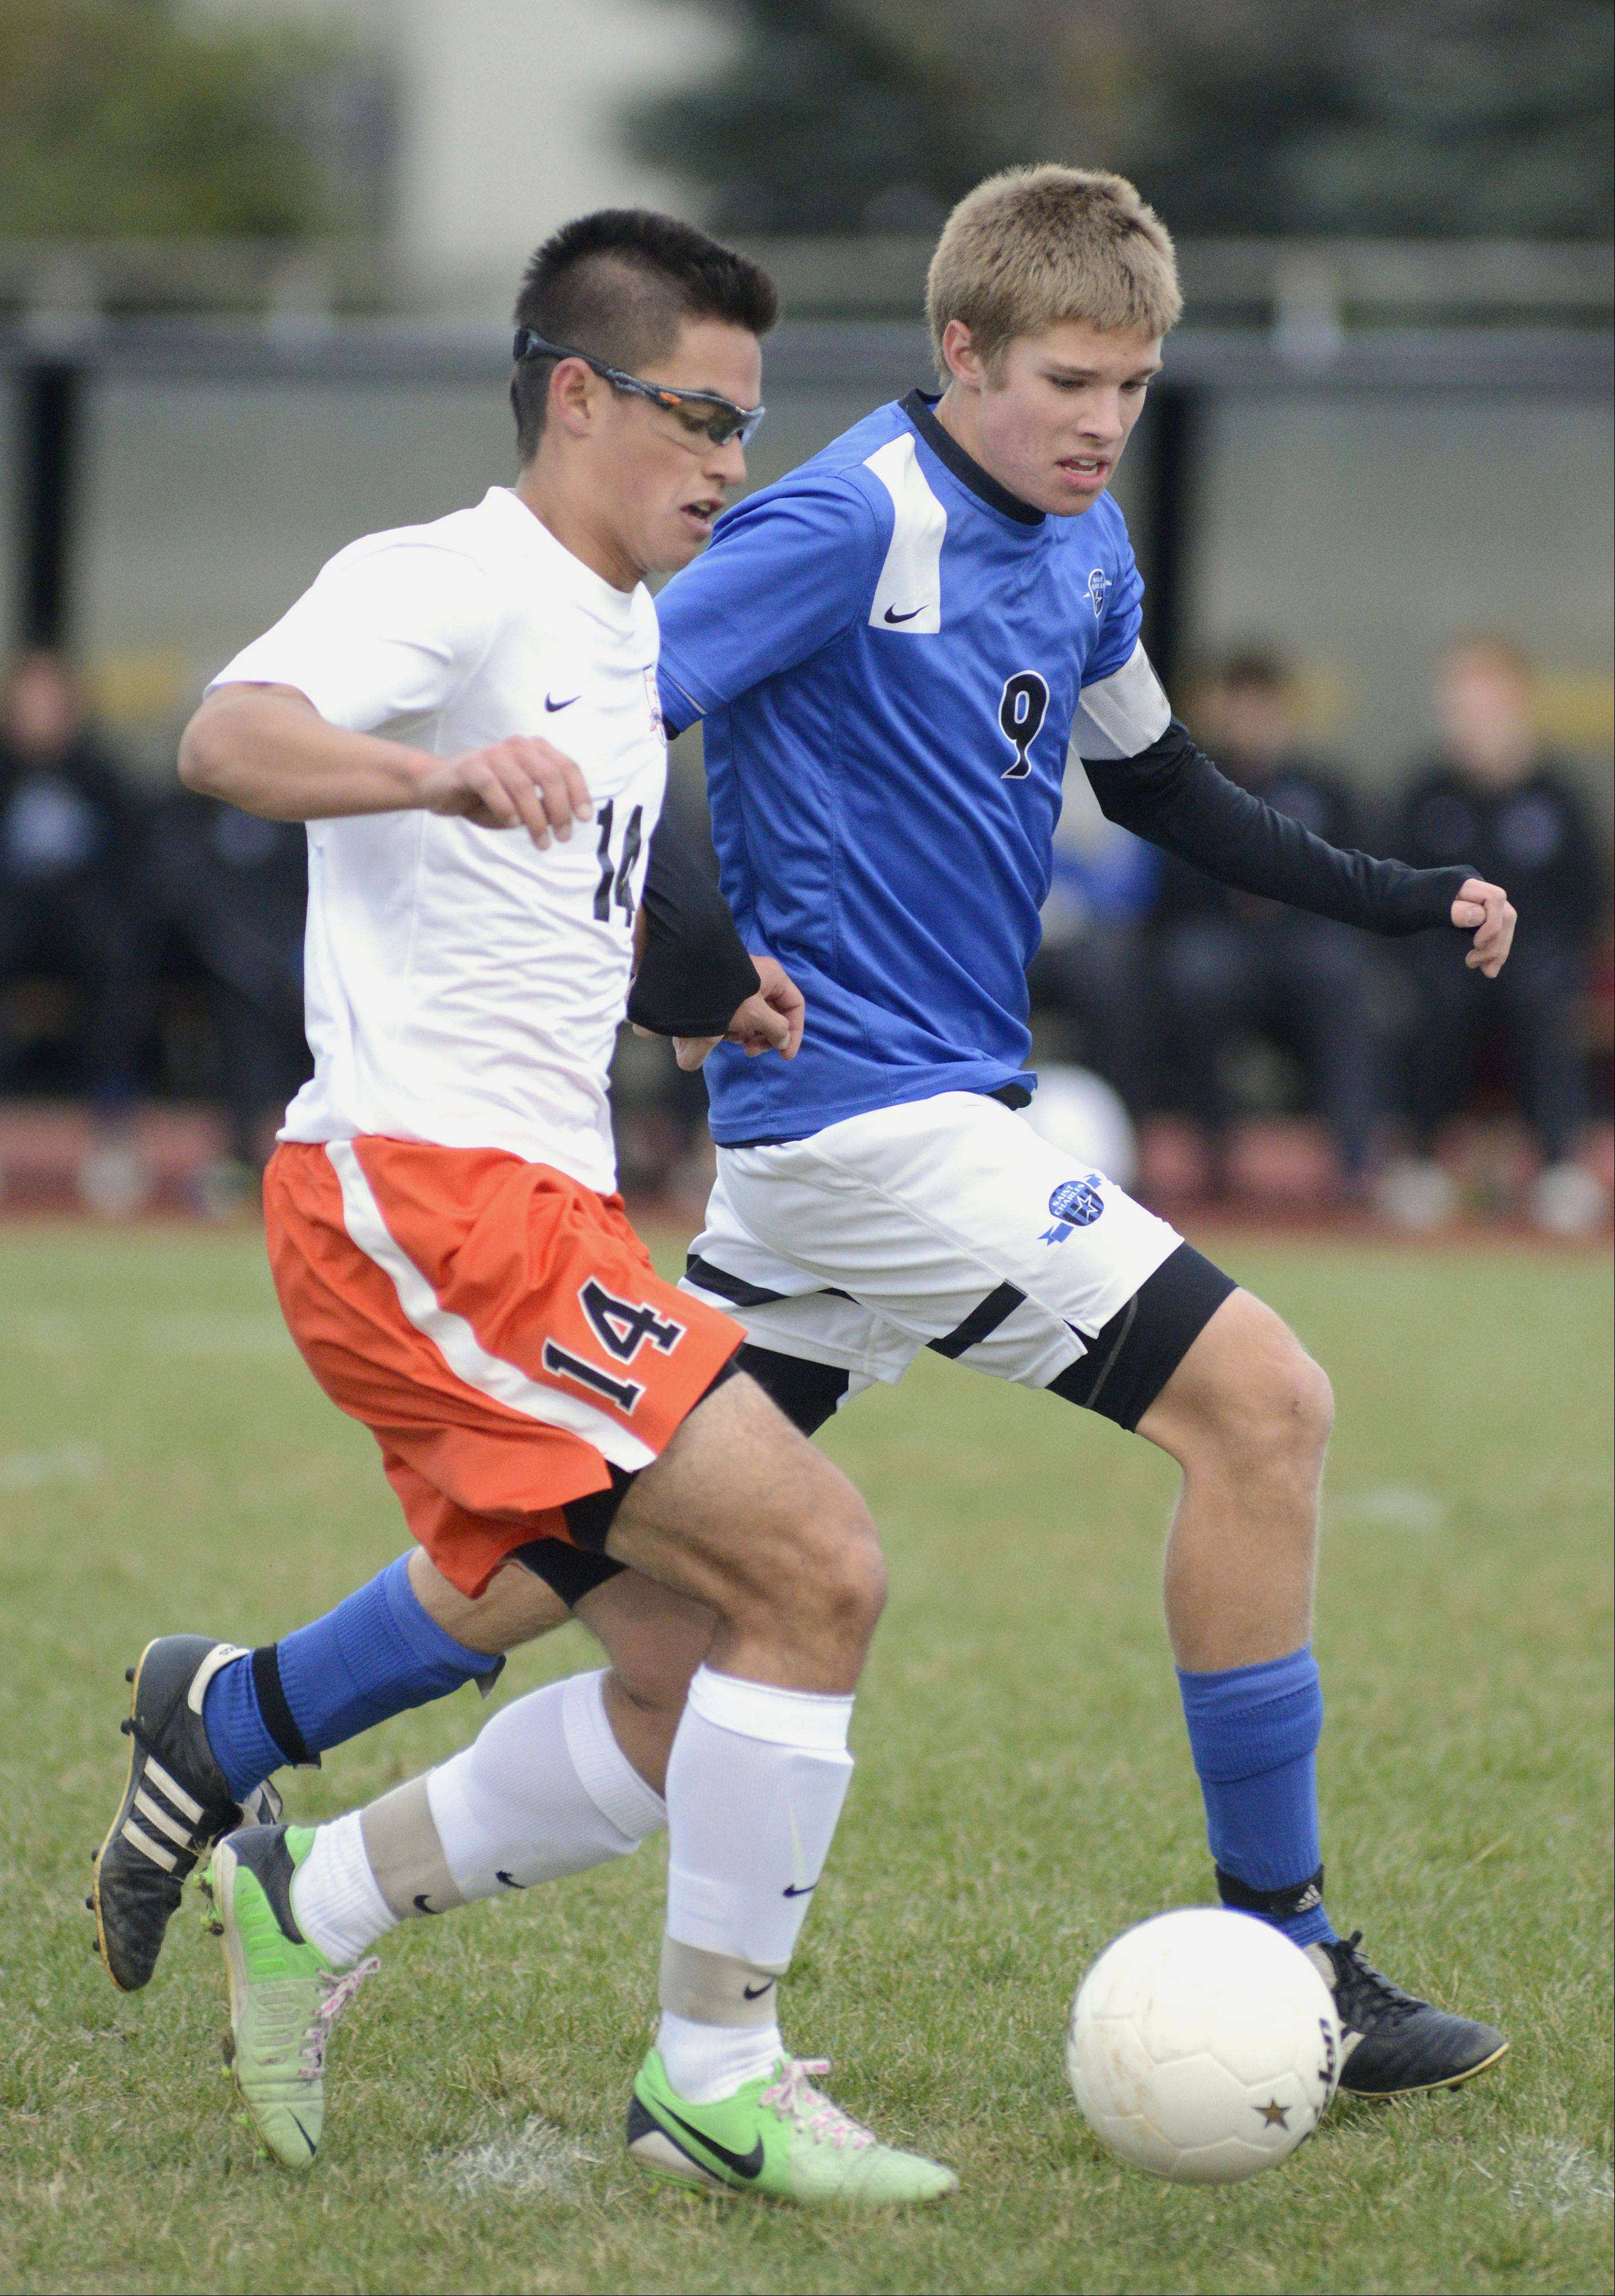 St. Charles East's Zach Manibog and St. Charles North's Brad Johnson fight for the ball in the first half on Wednesday, October 23.